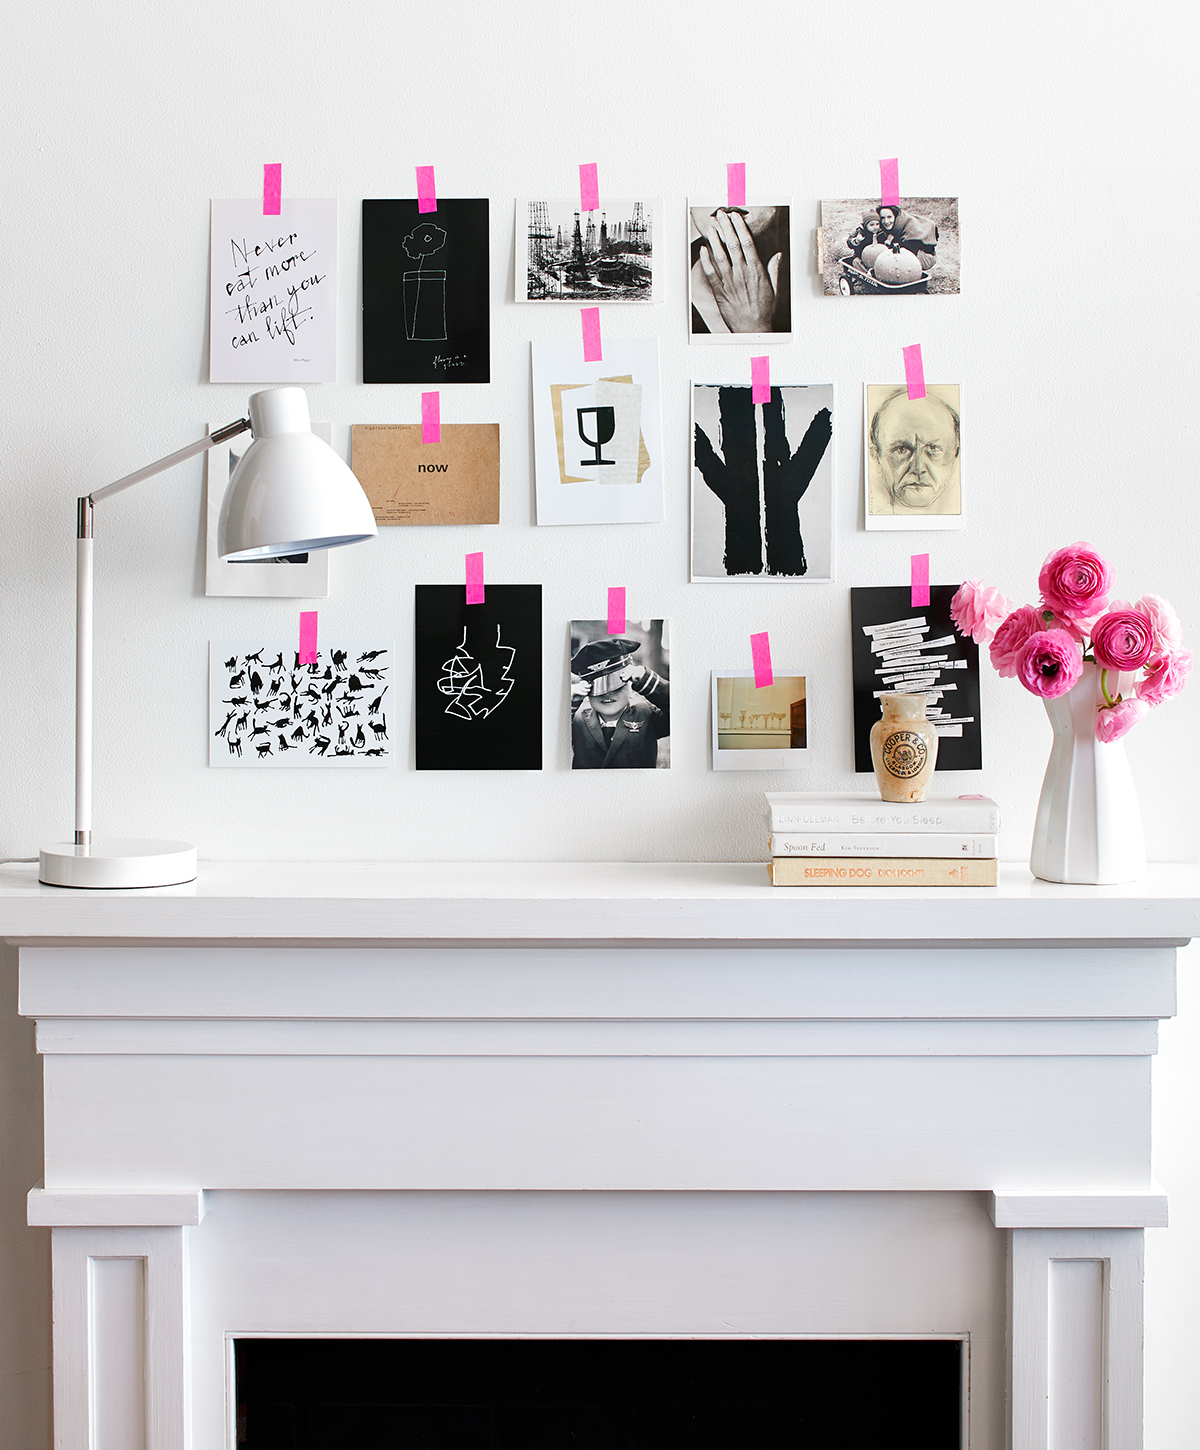 black and white art taped with pink washi tape